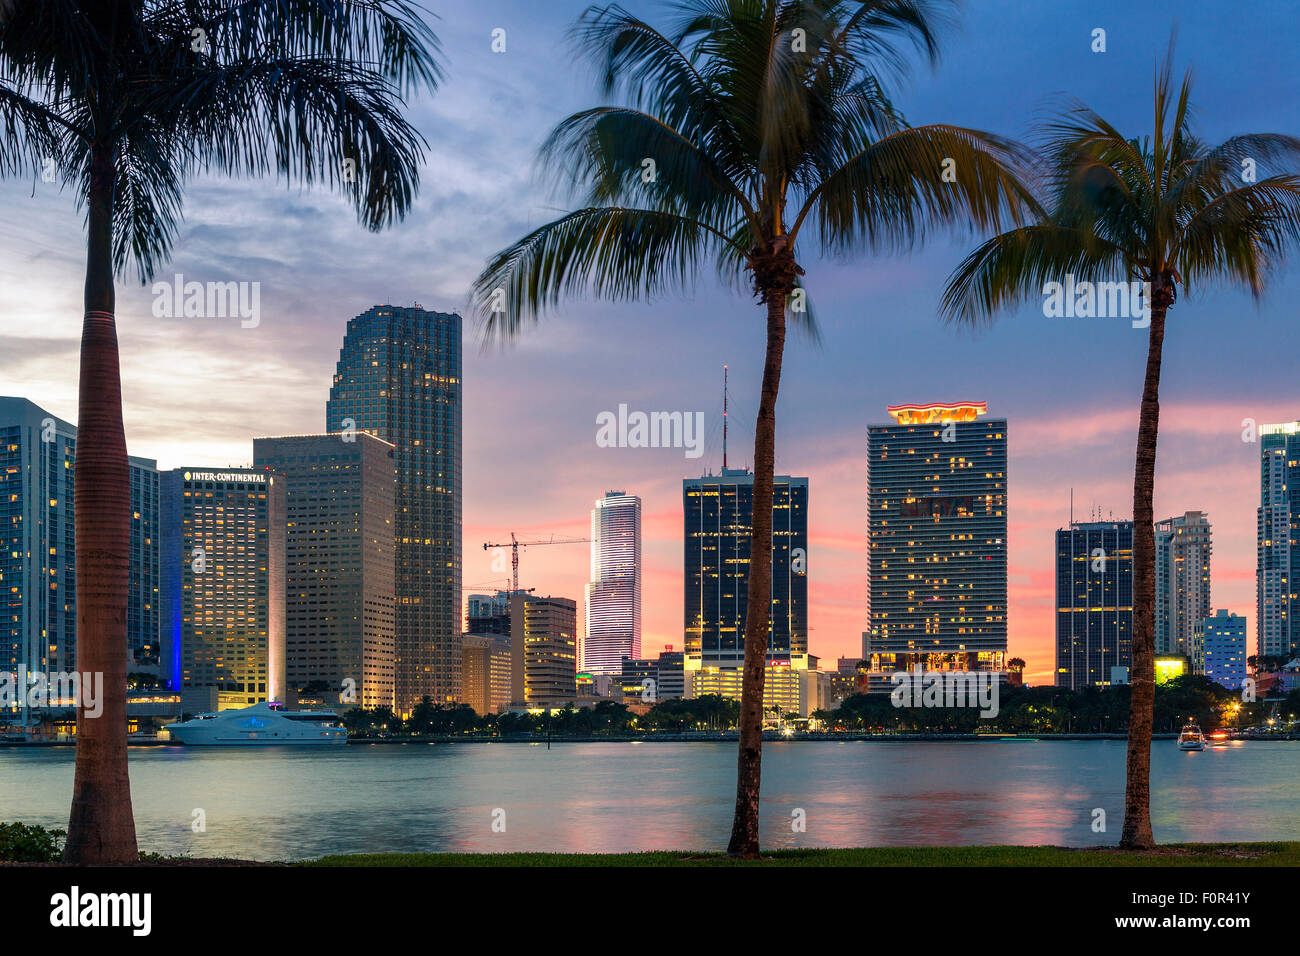 Florida, Miami Skyline at Dusk - Stock Image